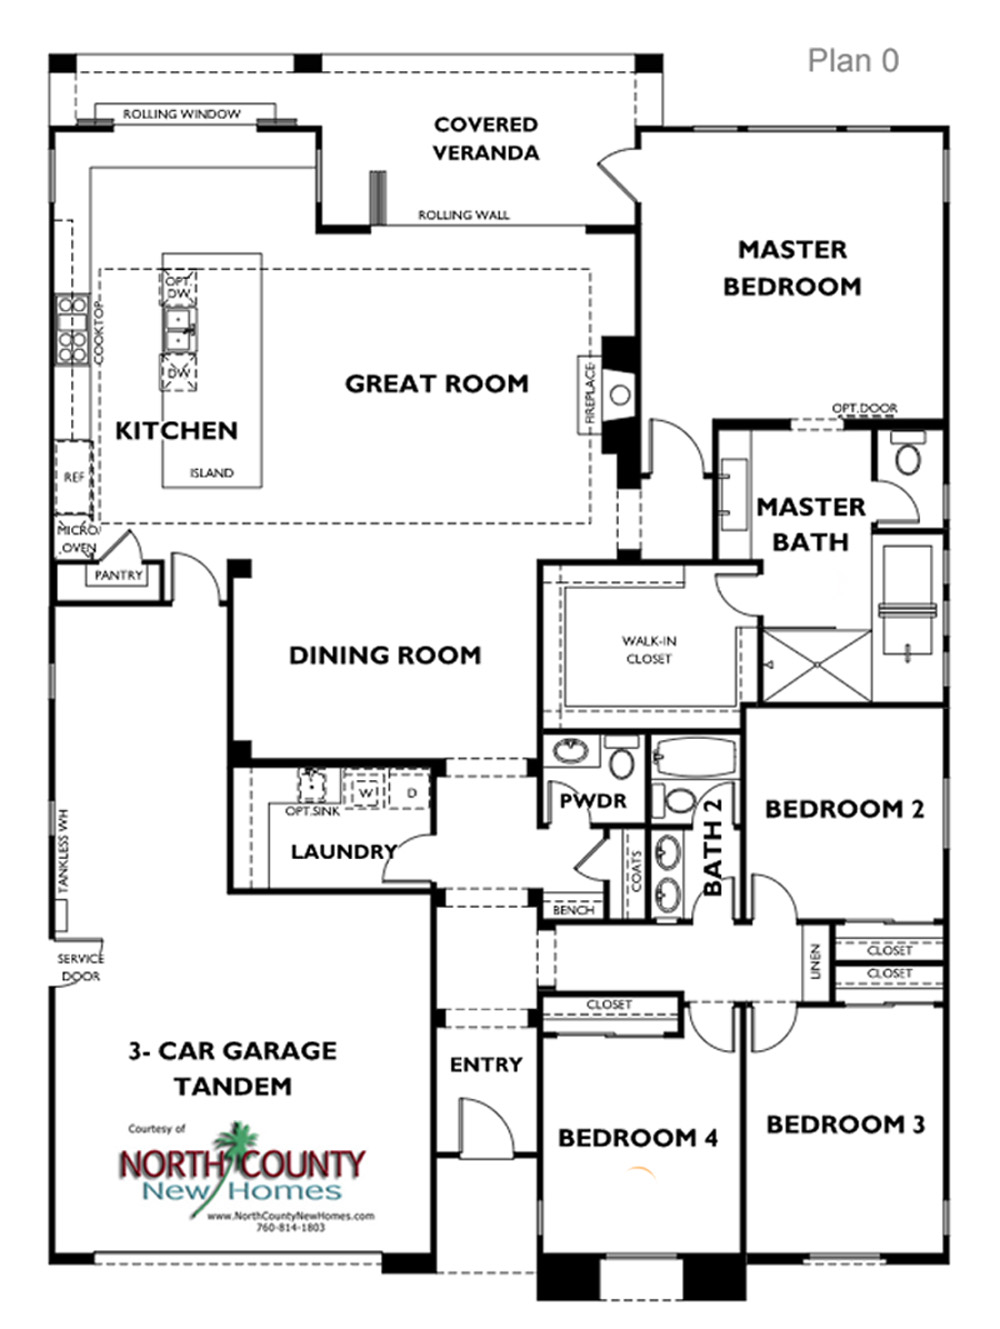 Floor Plans Lanai Ii New Homes In Carlsbad North County New Homes